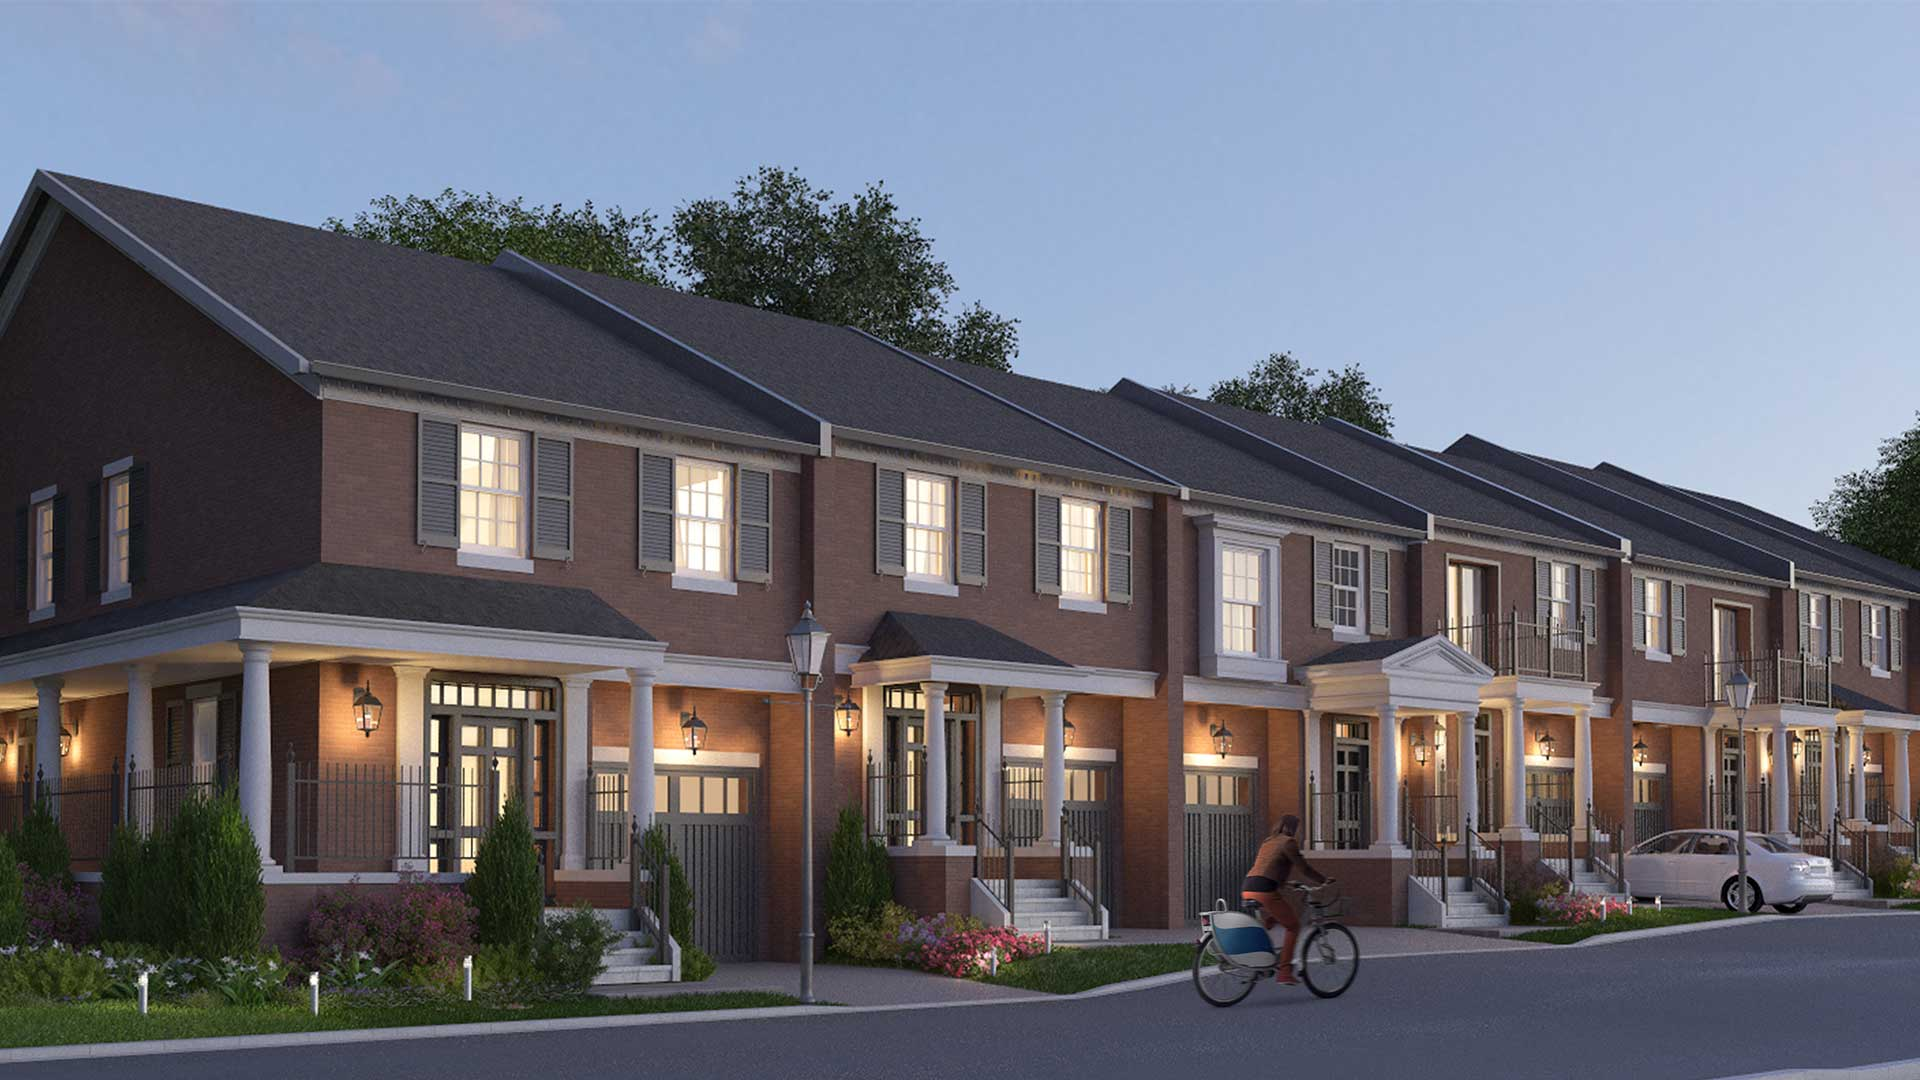 Bronte Hill Houses York Trafalgar Homes Milton